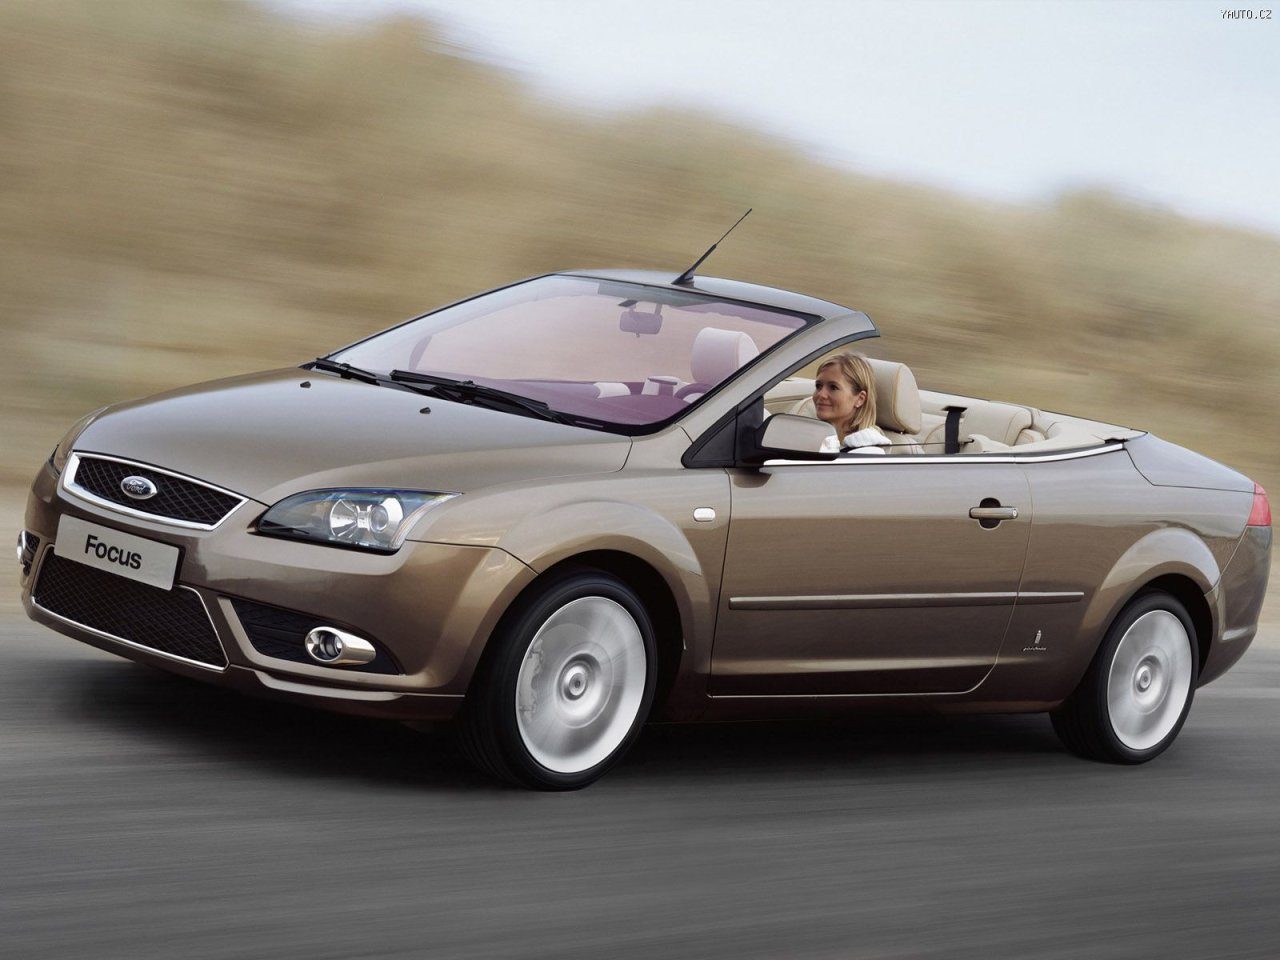 ford focus coupe cabriolet ii 2008 wallpaper